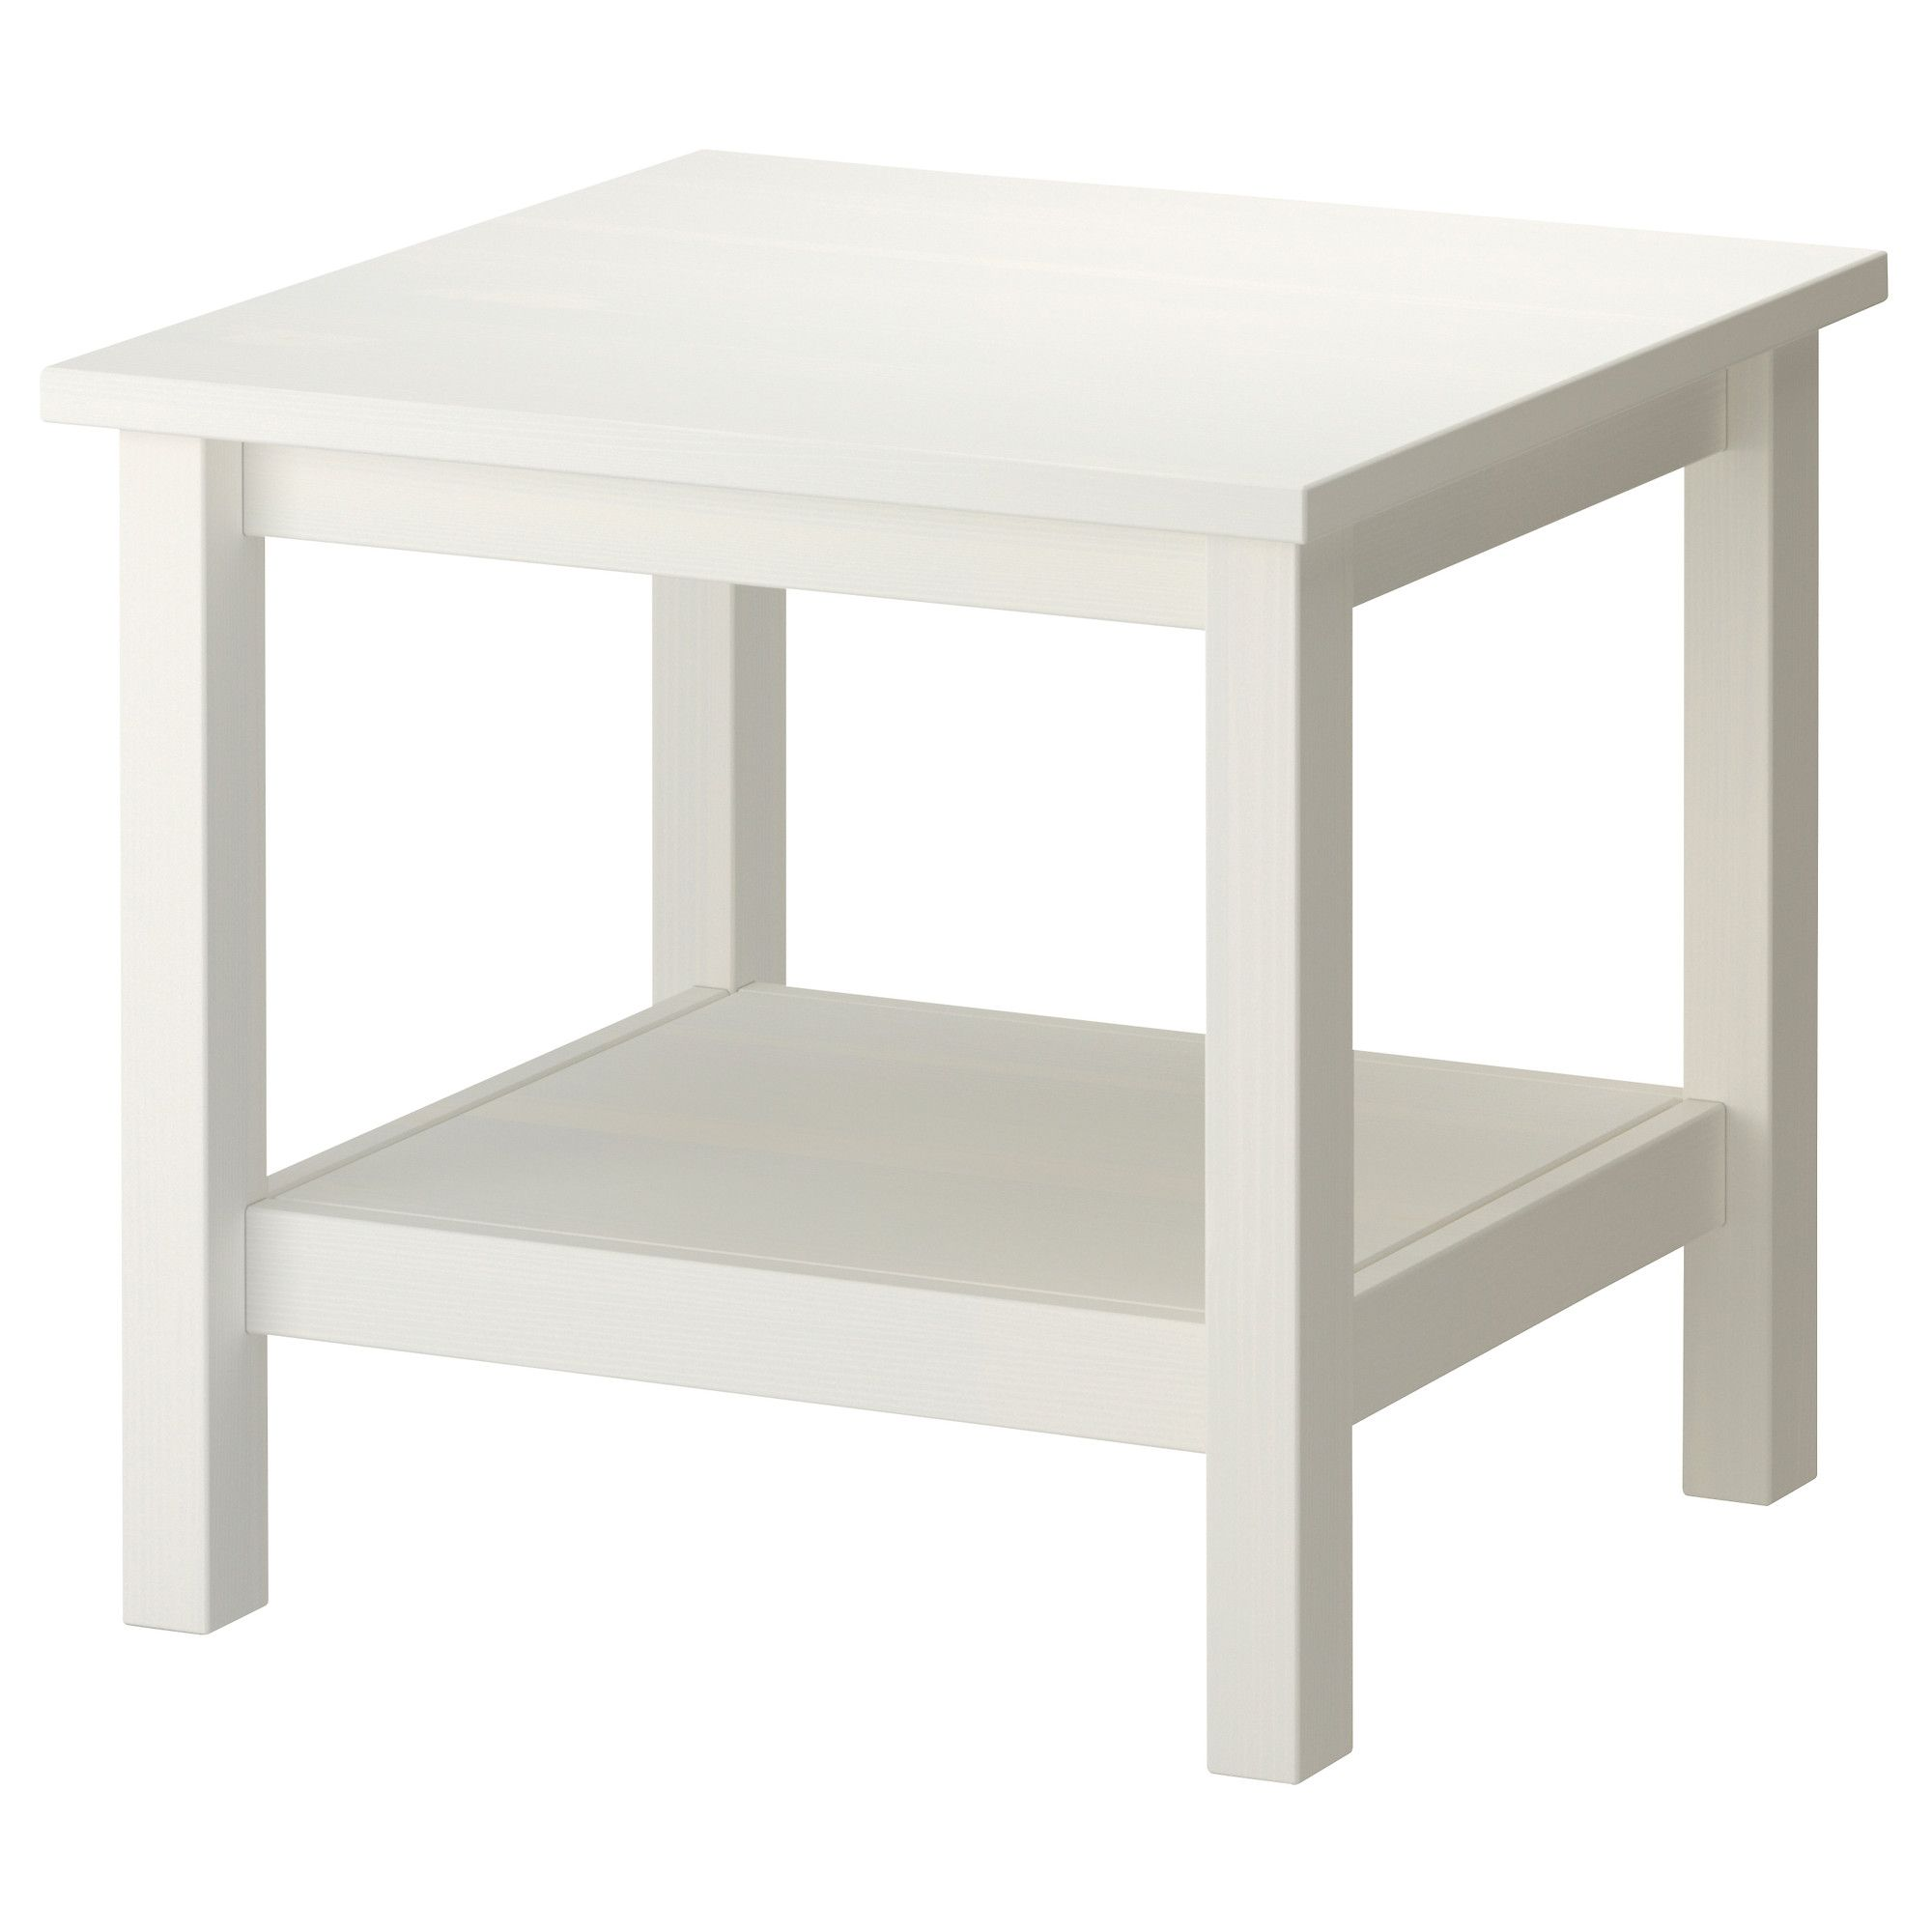 Table Roulante Pliante Conforama Hemnes Table Duappoint Teint Blanc Ikea With Table